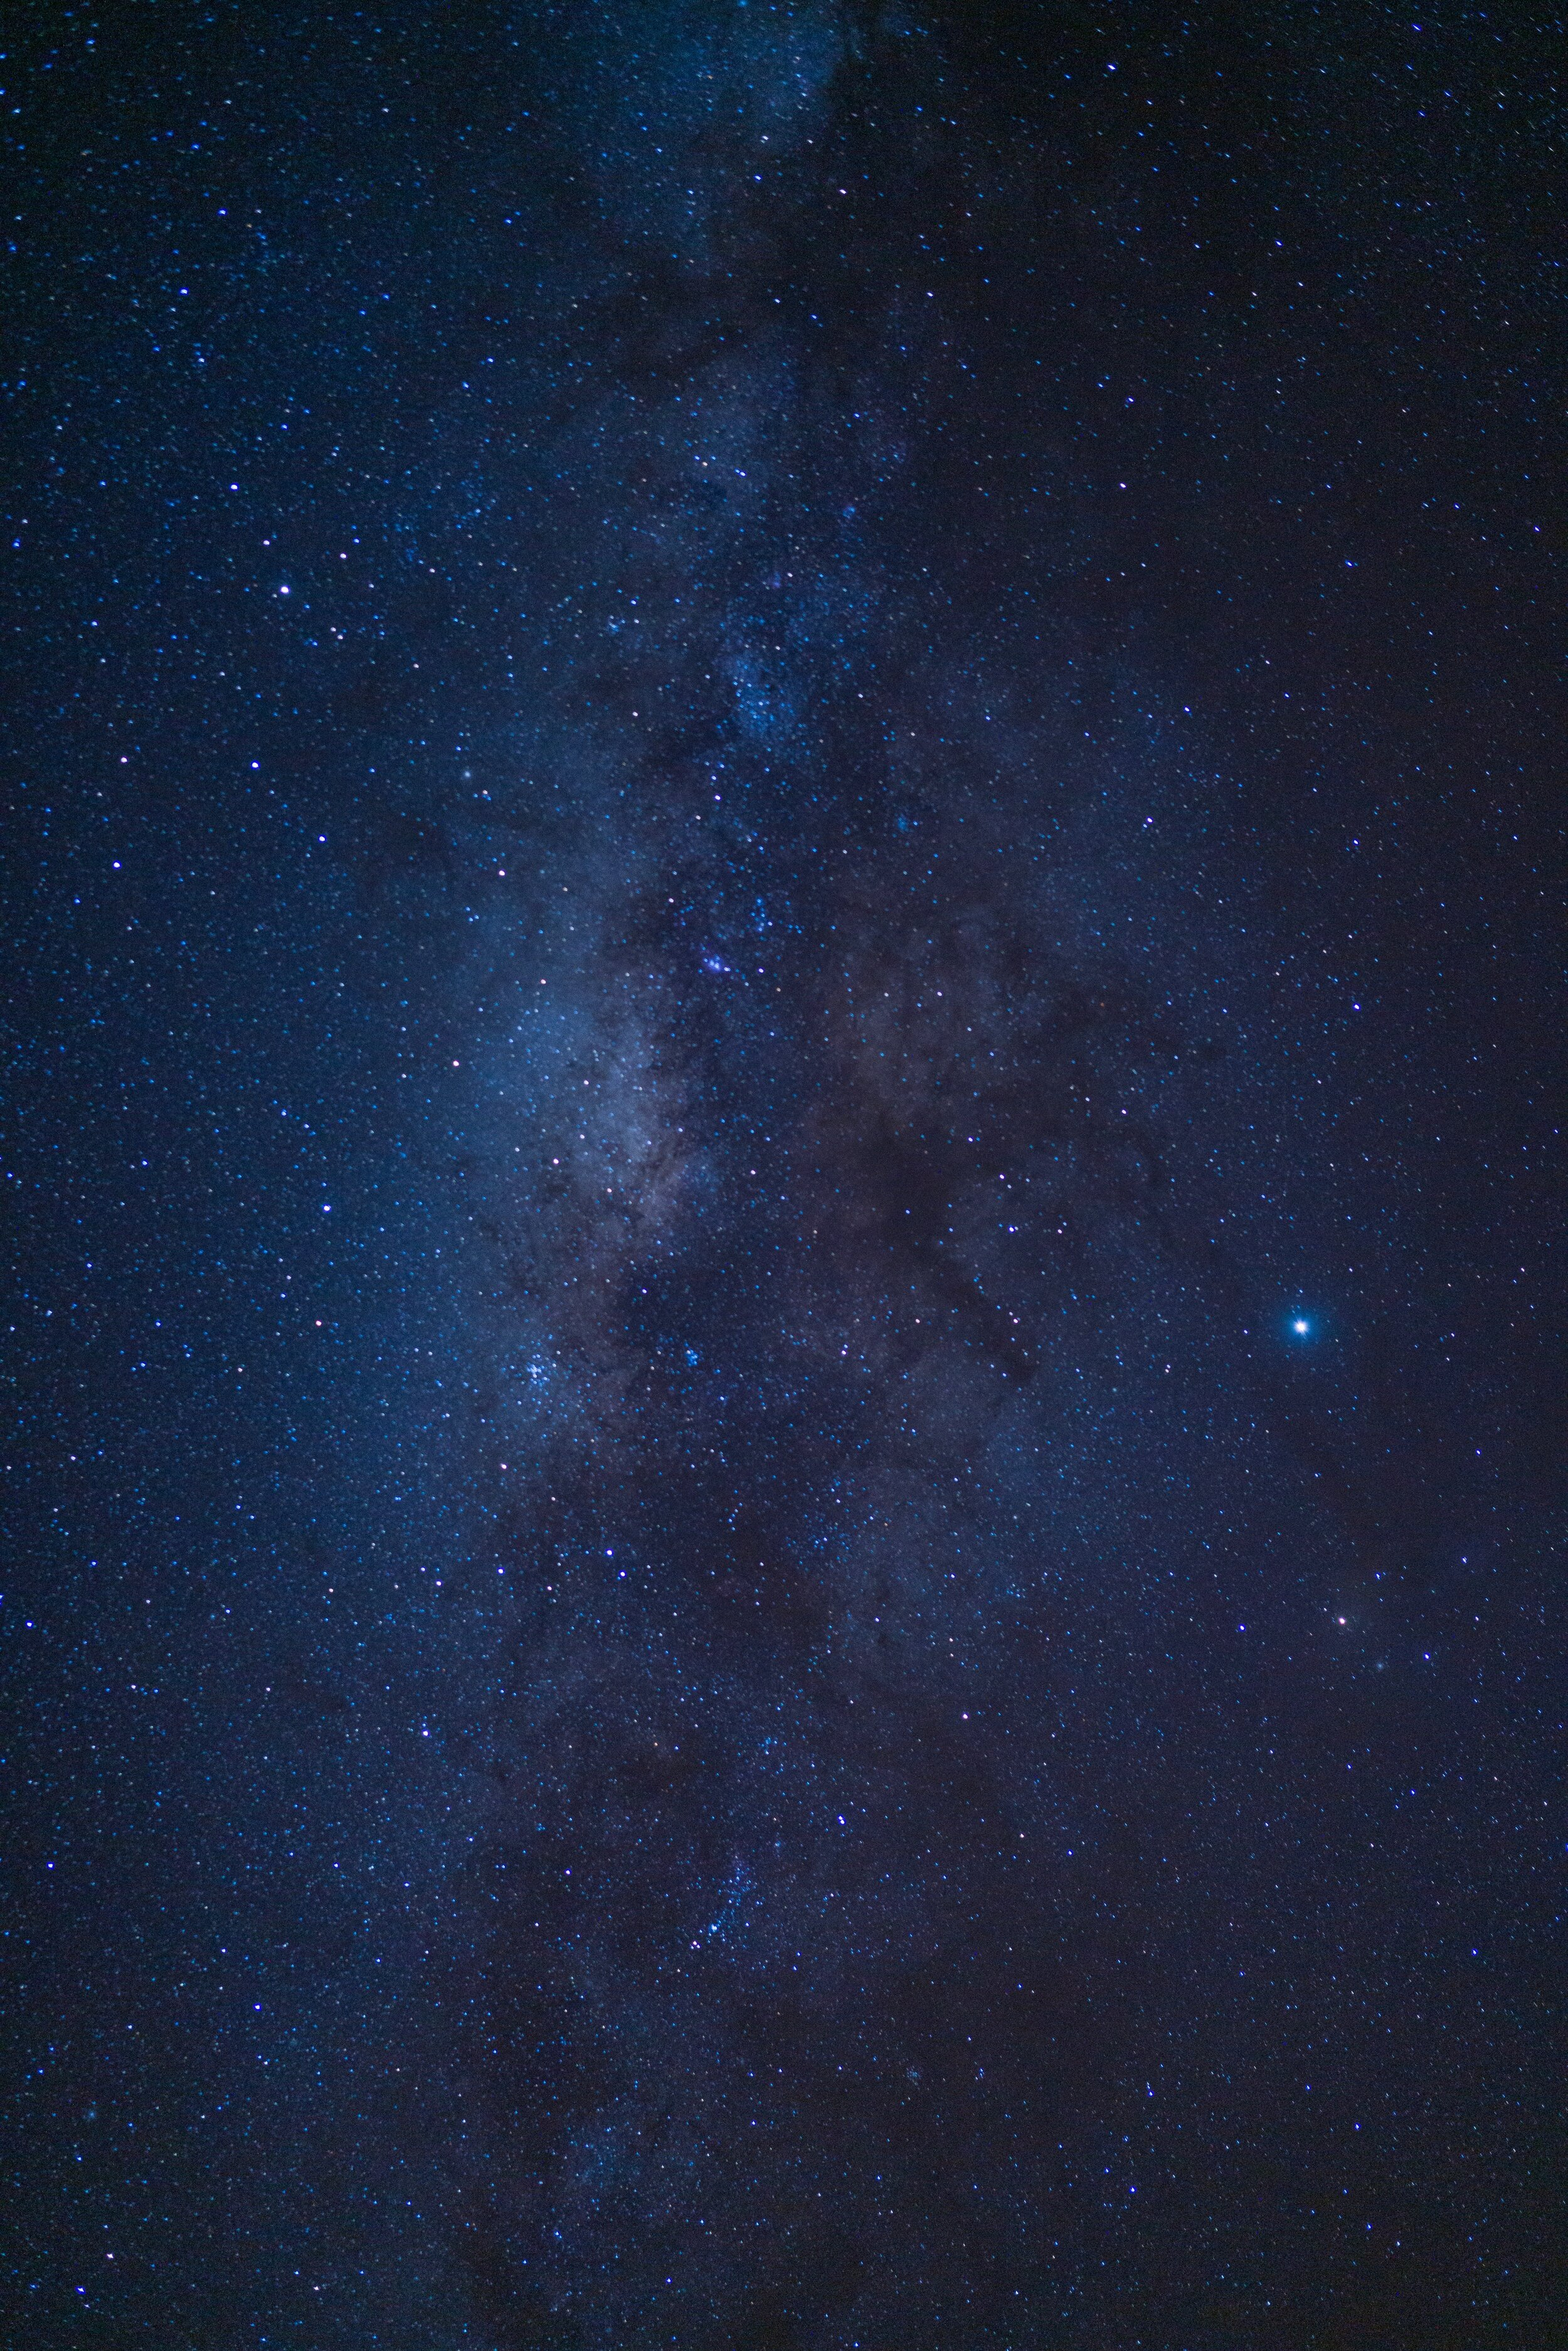 Milky Way seen from the balcony of our room